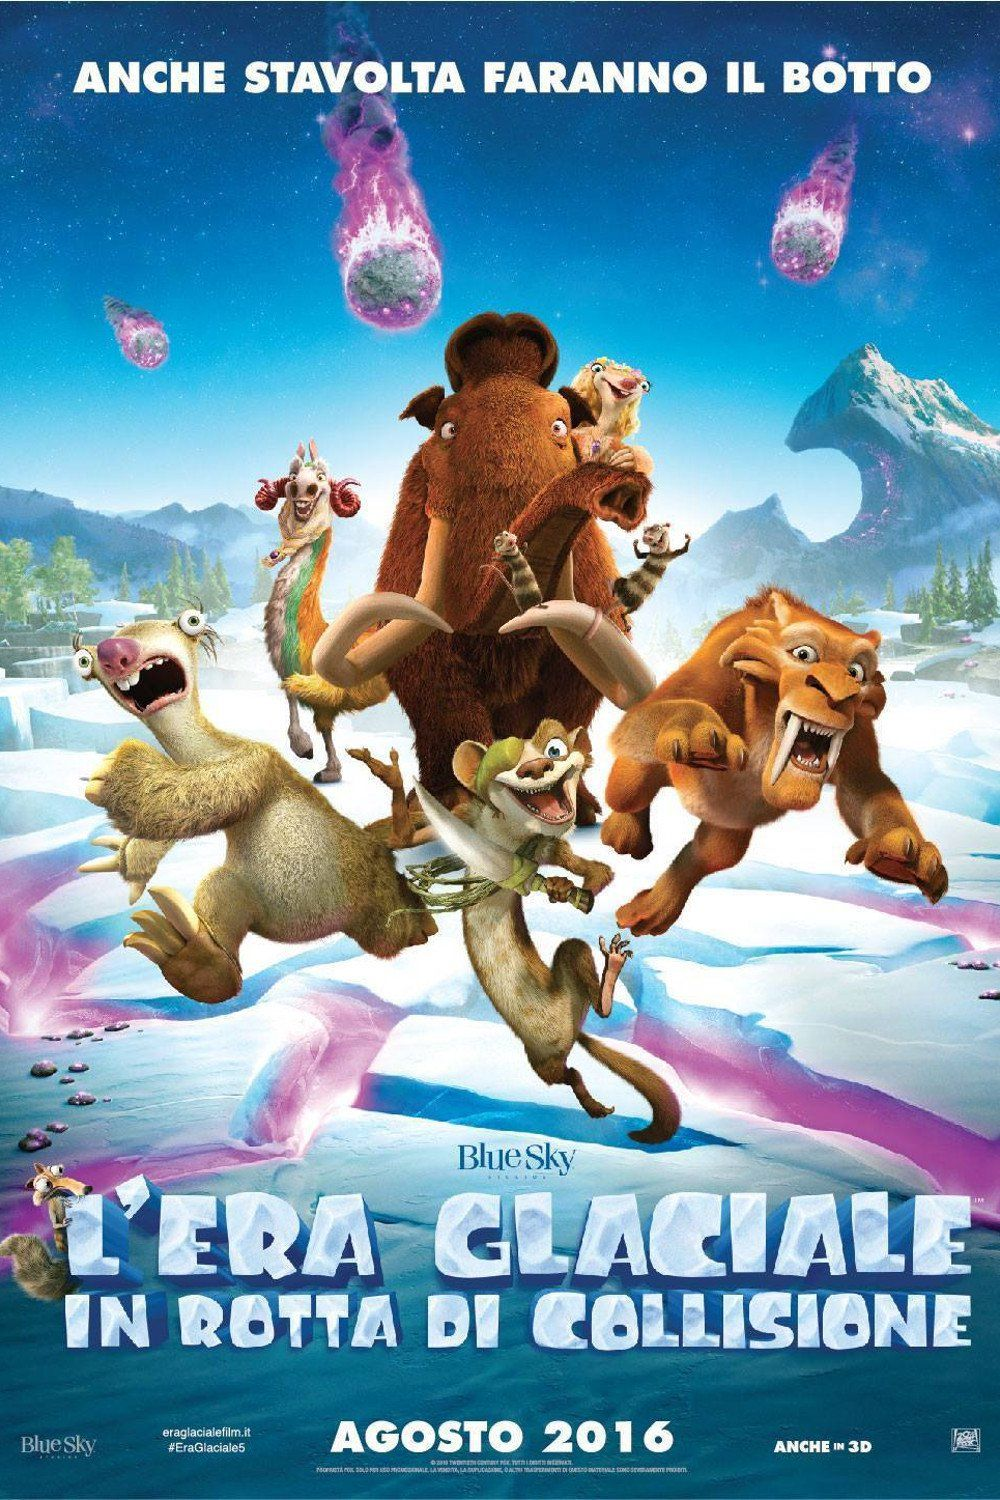 L Era Glaciale 5 In Rotta Di Collisione Streaming Film E Serie Tv In Altadefinizione Hd Era Glaciale Film Commedia